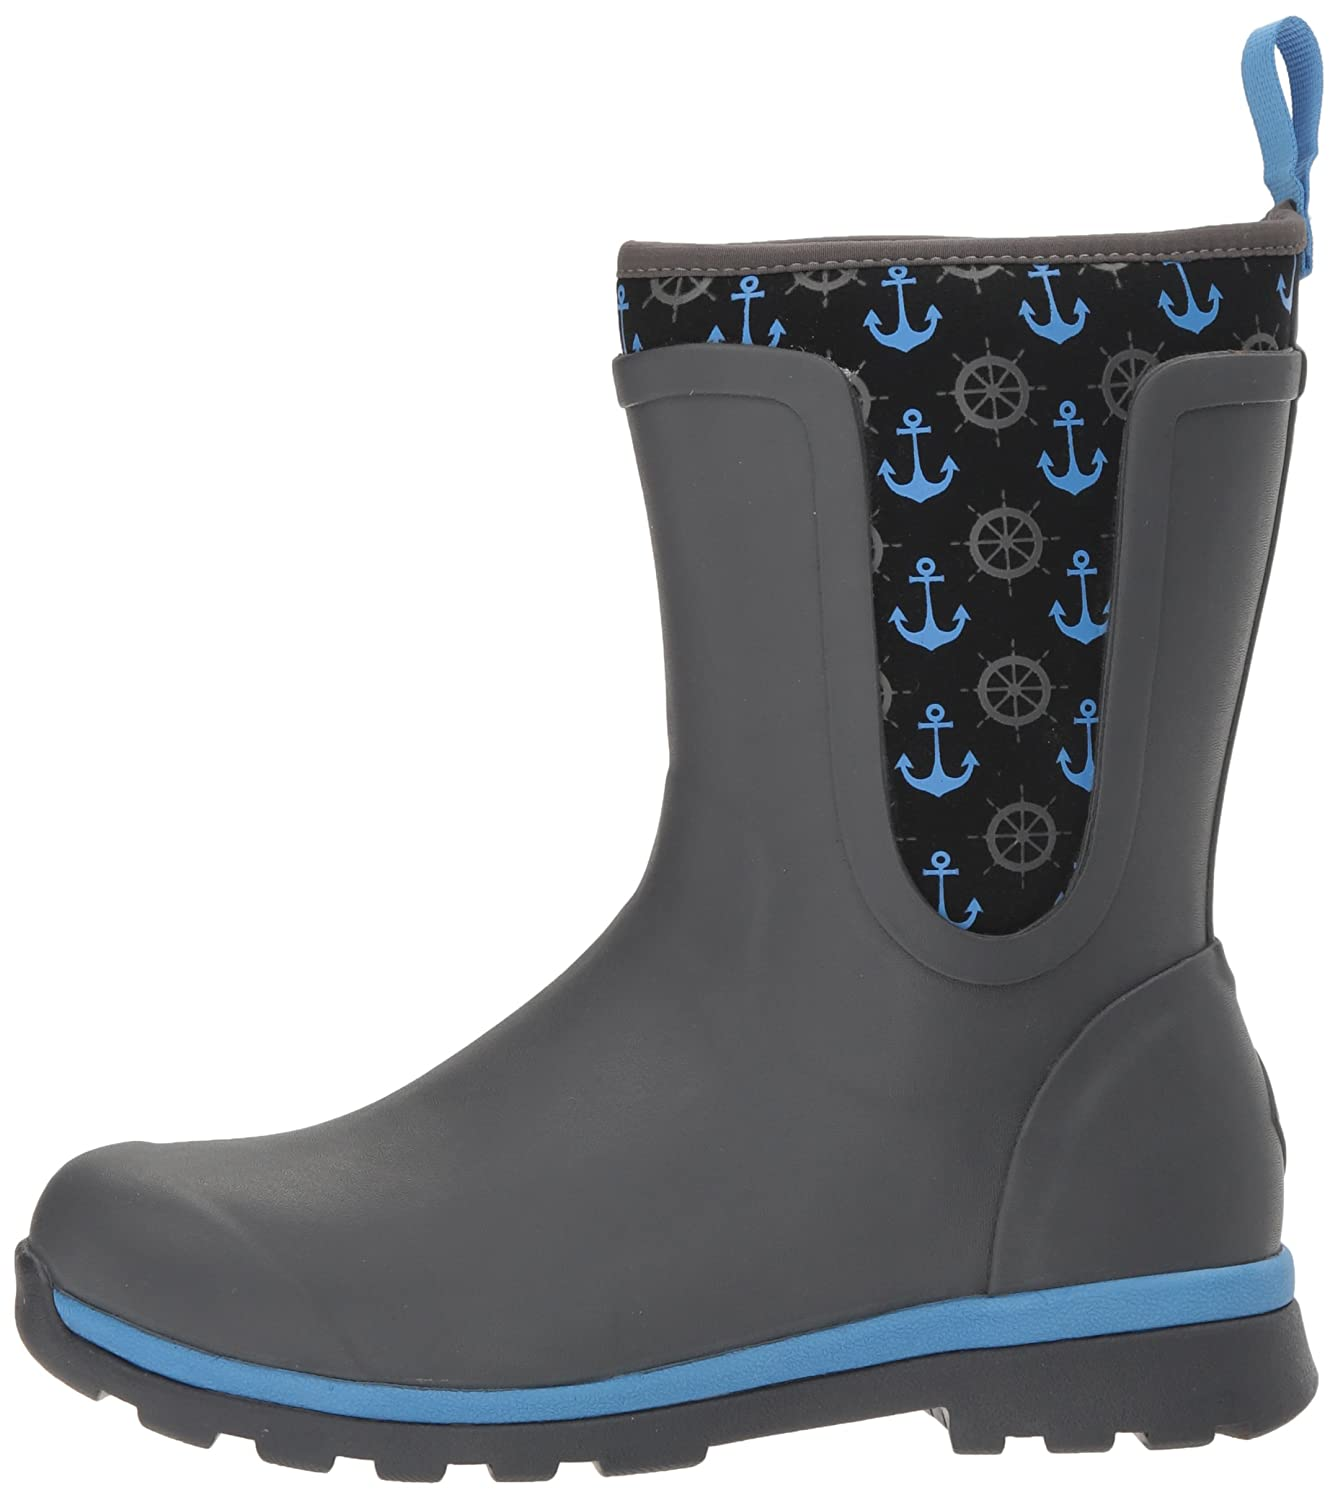 Muck B(M) Boot Women's Cambridge Mid Snow B01N22NODB 7 B(M) Muck US|Gray With Blue Anchors c397ee